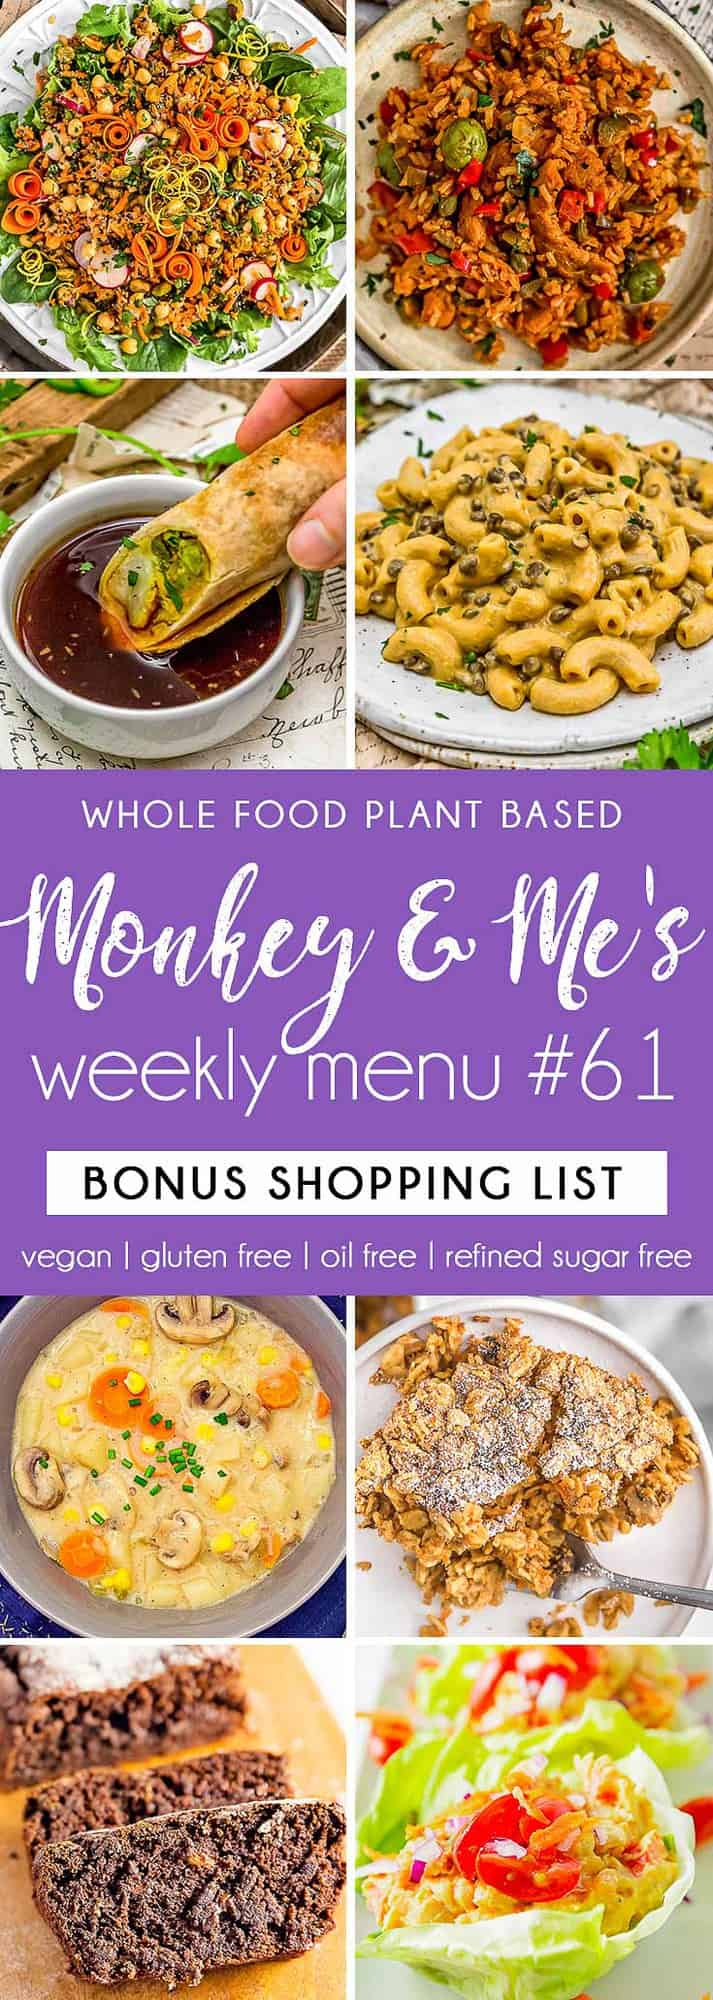 Monkey and Me's Menu 61 featuring 8 recipes